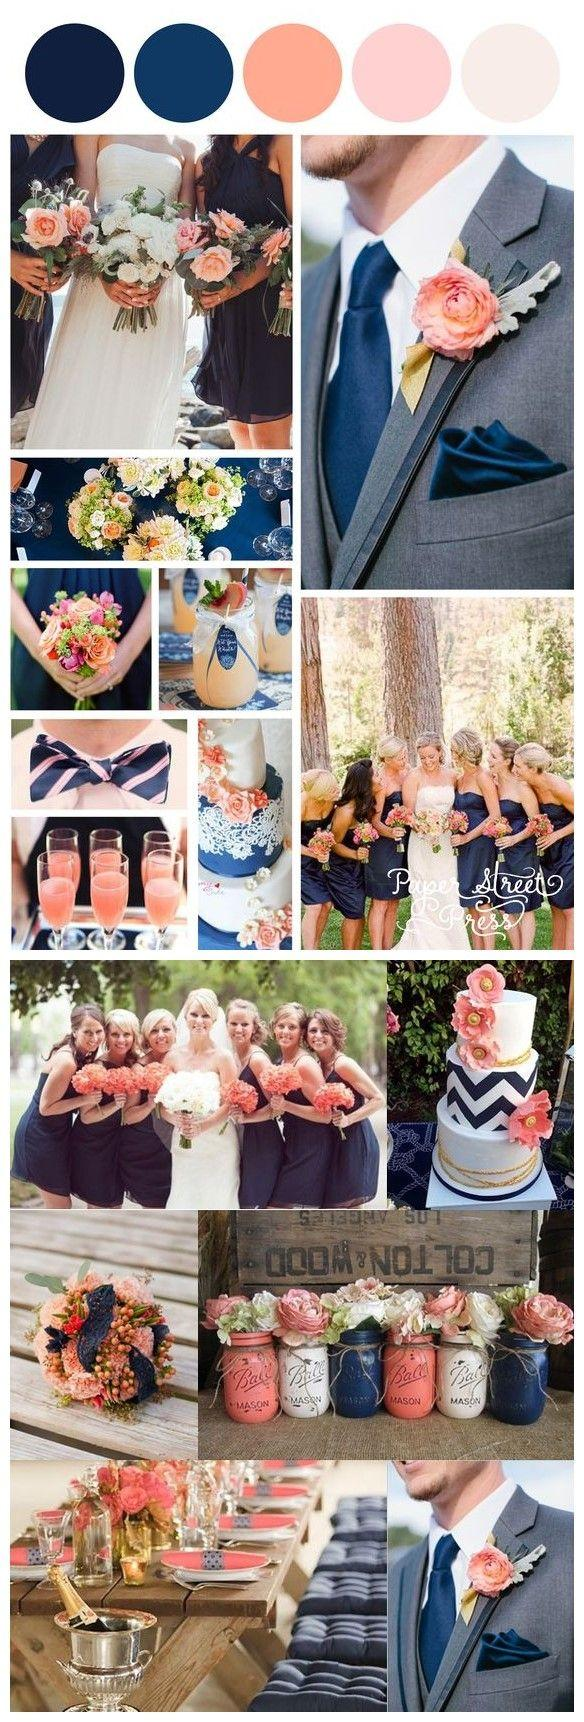 Hochzeit - 18 Peach And Navy Blue Inspired Wedding Color Ideas